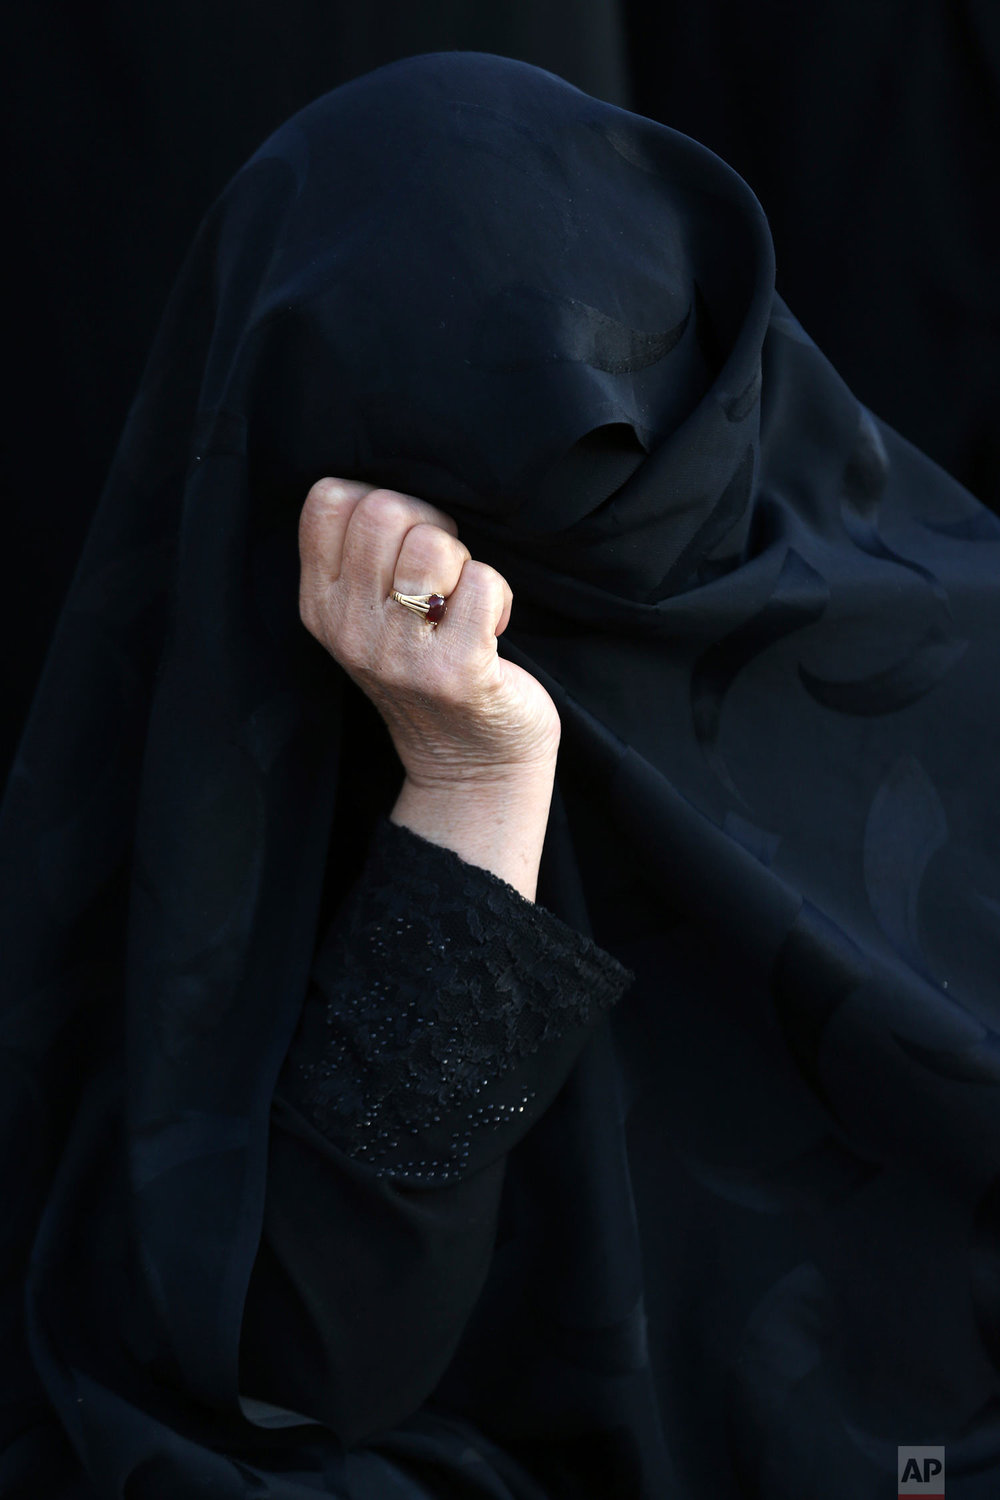 An elderly woman takes part in a procession during the Muslim month of Muharram, an important period of mourning for Muslim Shiites which marks the anniversary of martyrdom of Imam Hussein, a grandson of Prophet Muhammad and the third Shiite saint, who was killed during a battle in Karbala in present-day Iraq in 7th century, in Tehran, Iran, Friday, Sept. 29, 2017. (AP Photo/Vahid Salemi)